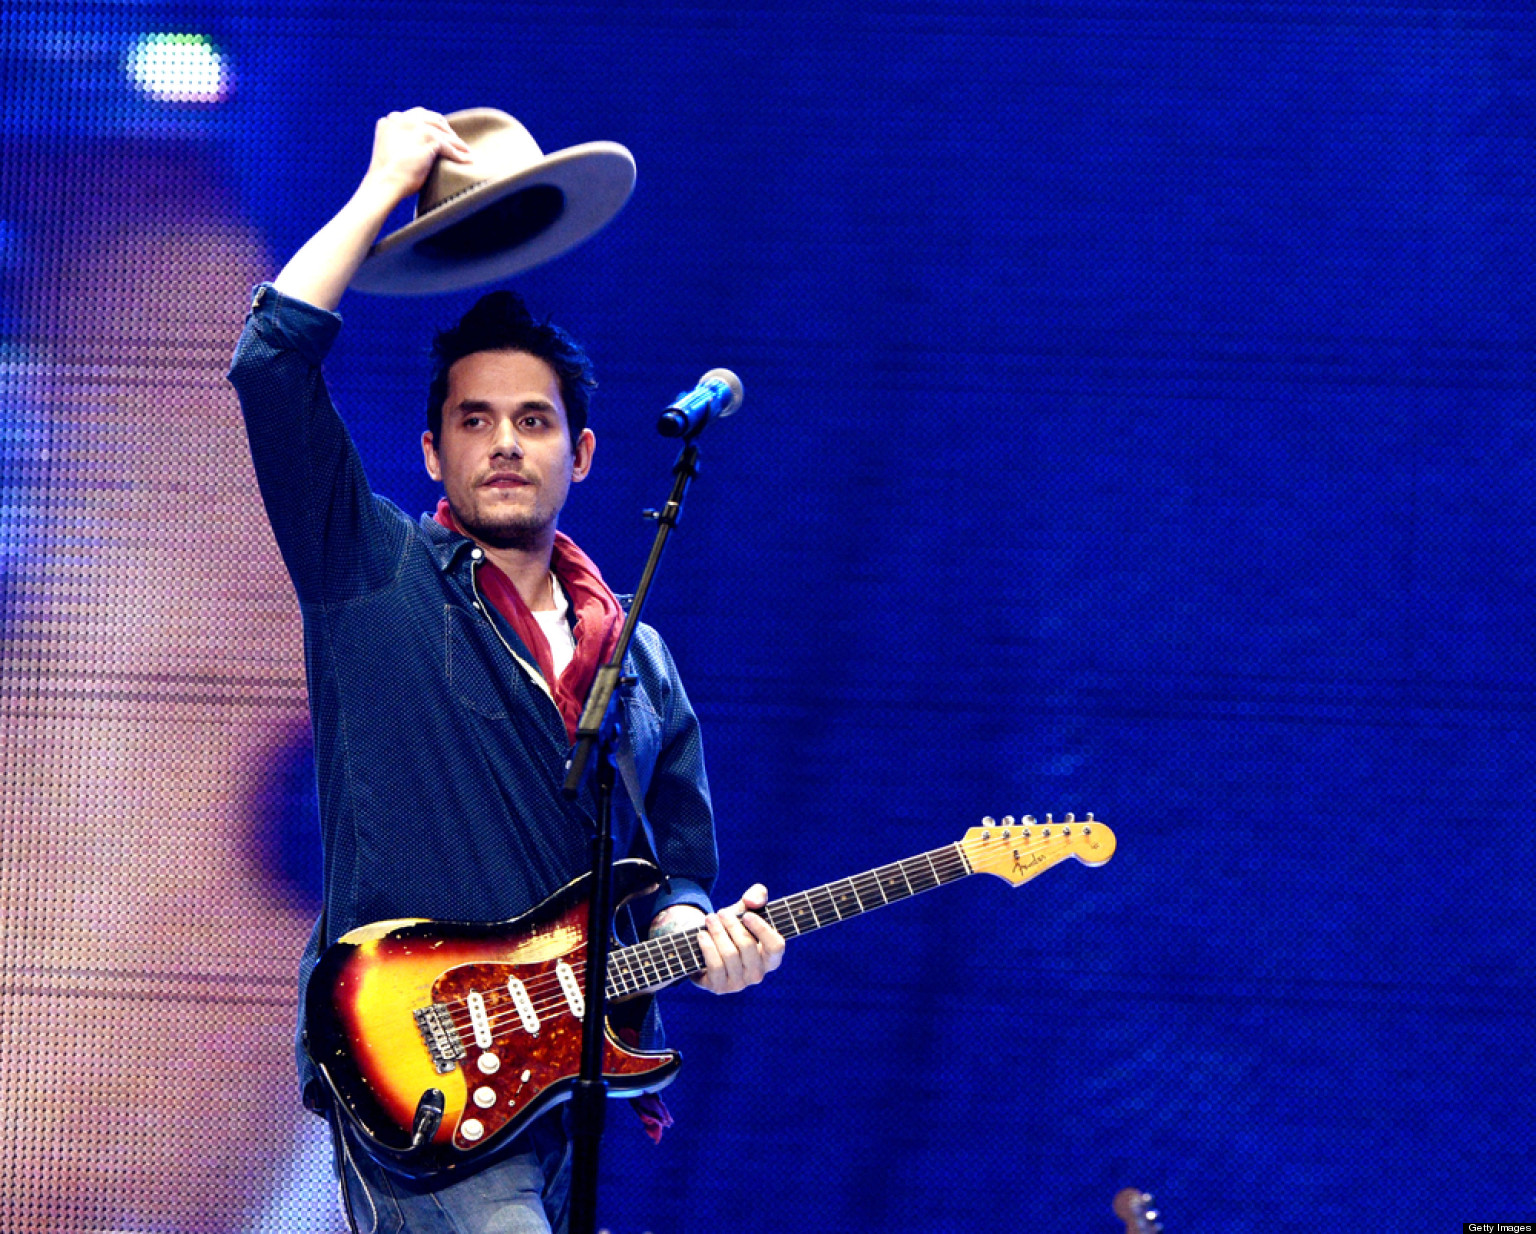 John Mayer S Sixth Album In The Works As Singer Records In